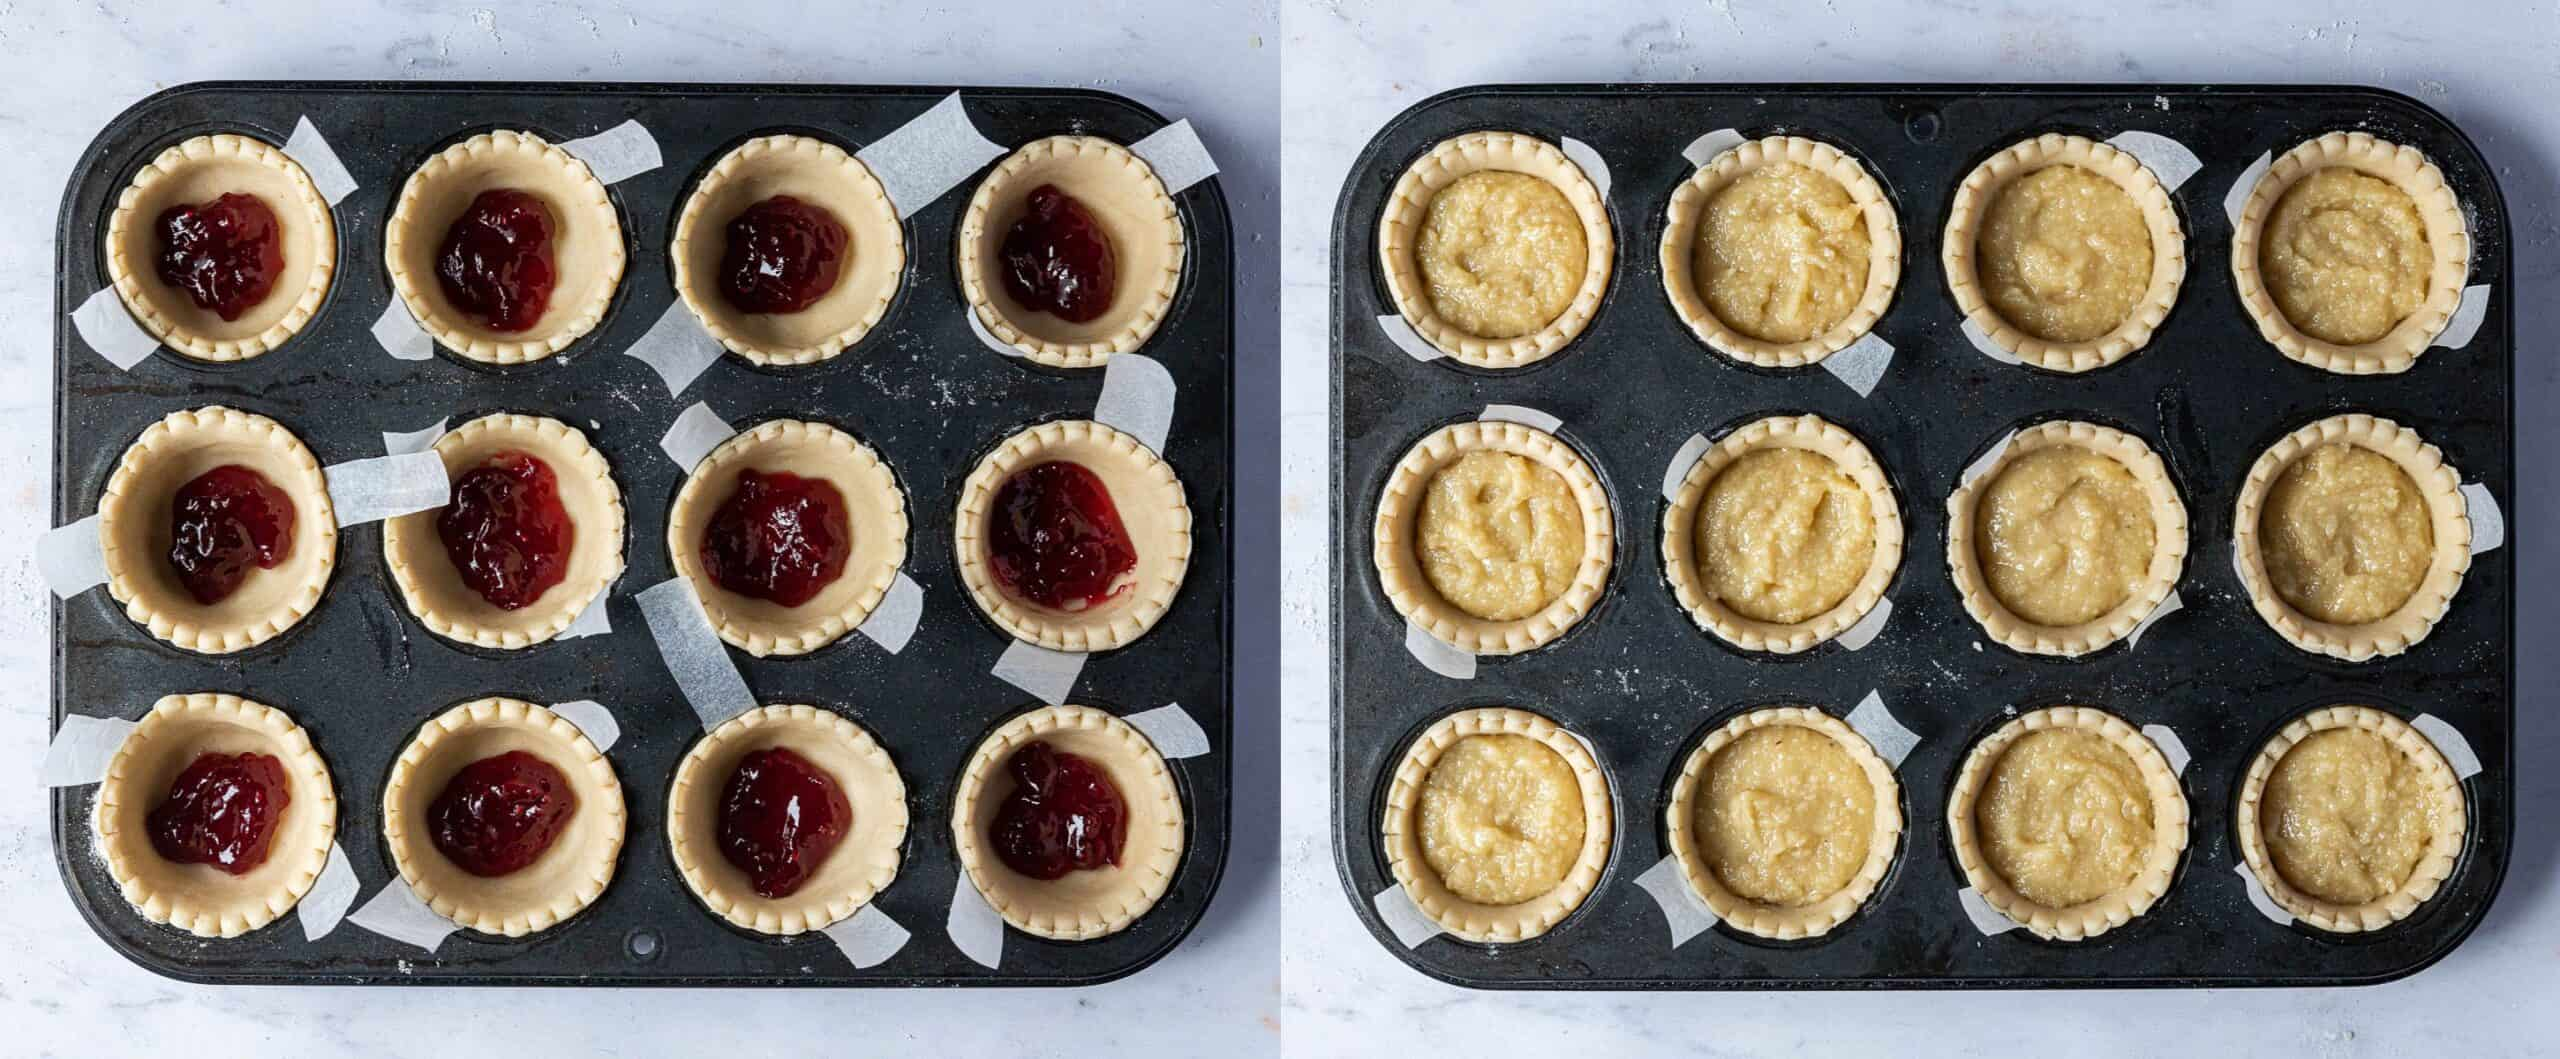 A two image collage of filling the pastry cases with jam and frangipane.